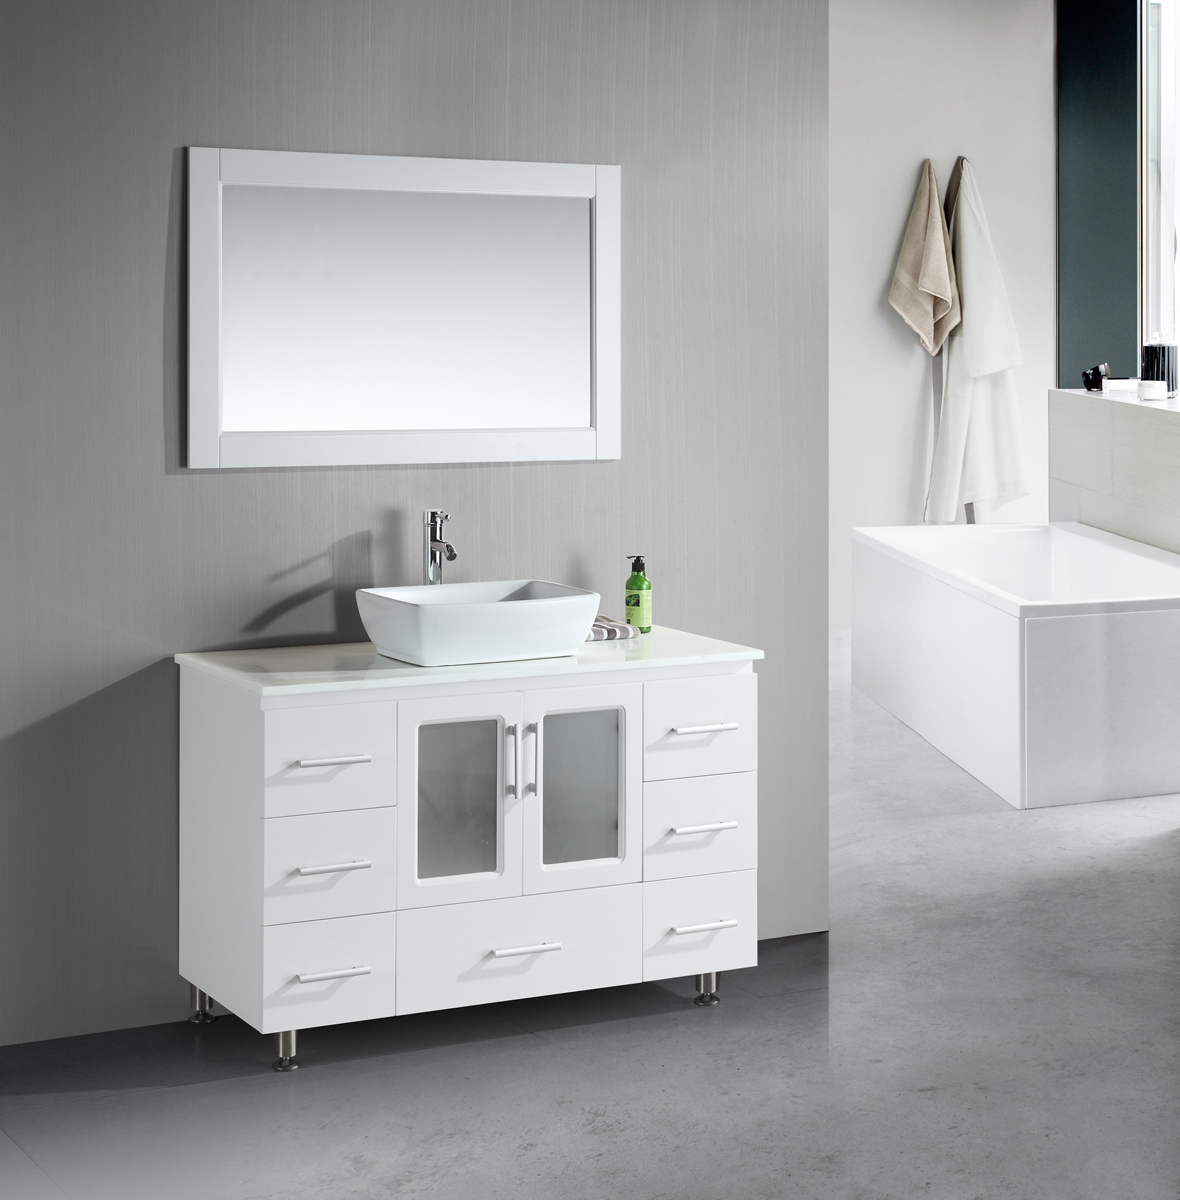 Small Bathroom Vanities With Vessel Sinks To Create Cool And Stylish Vibes For Your Tiny Bath